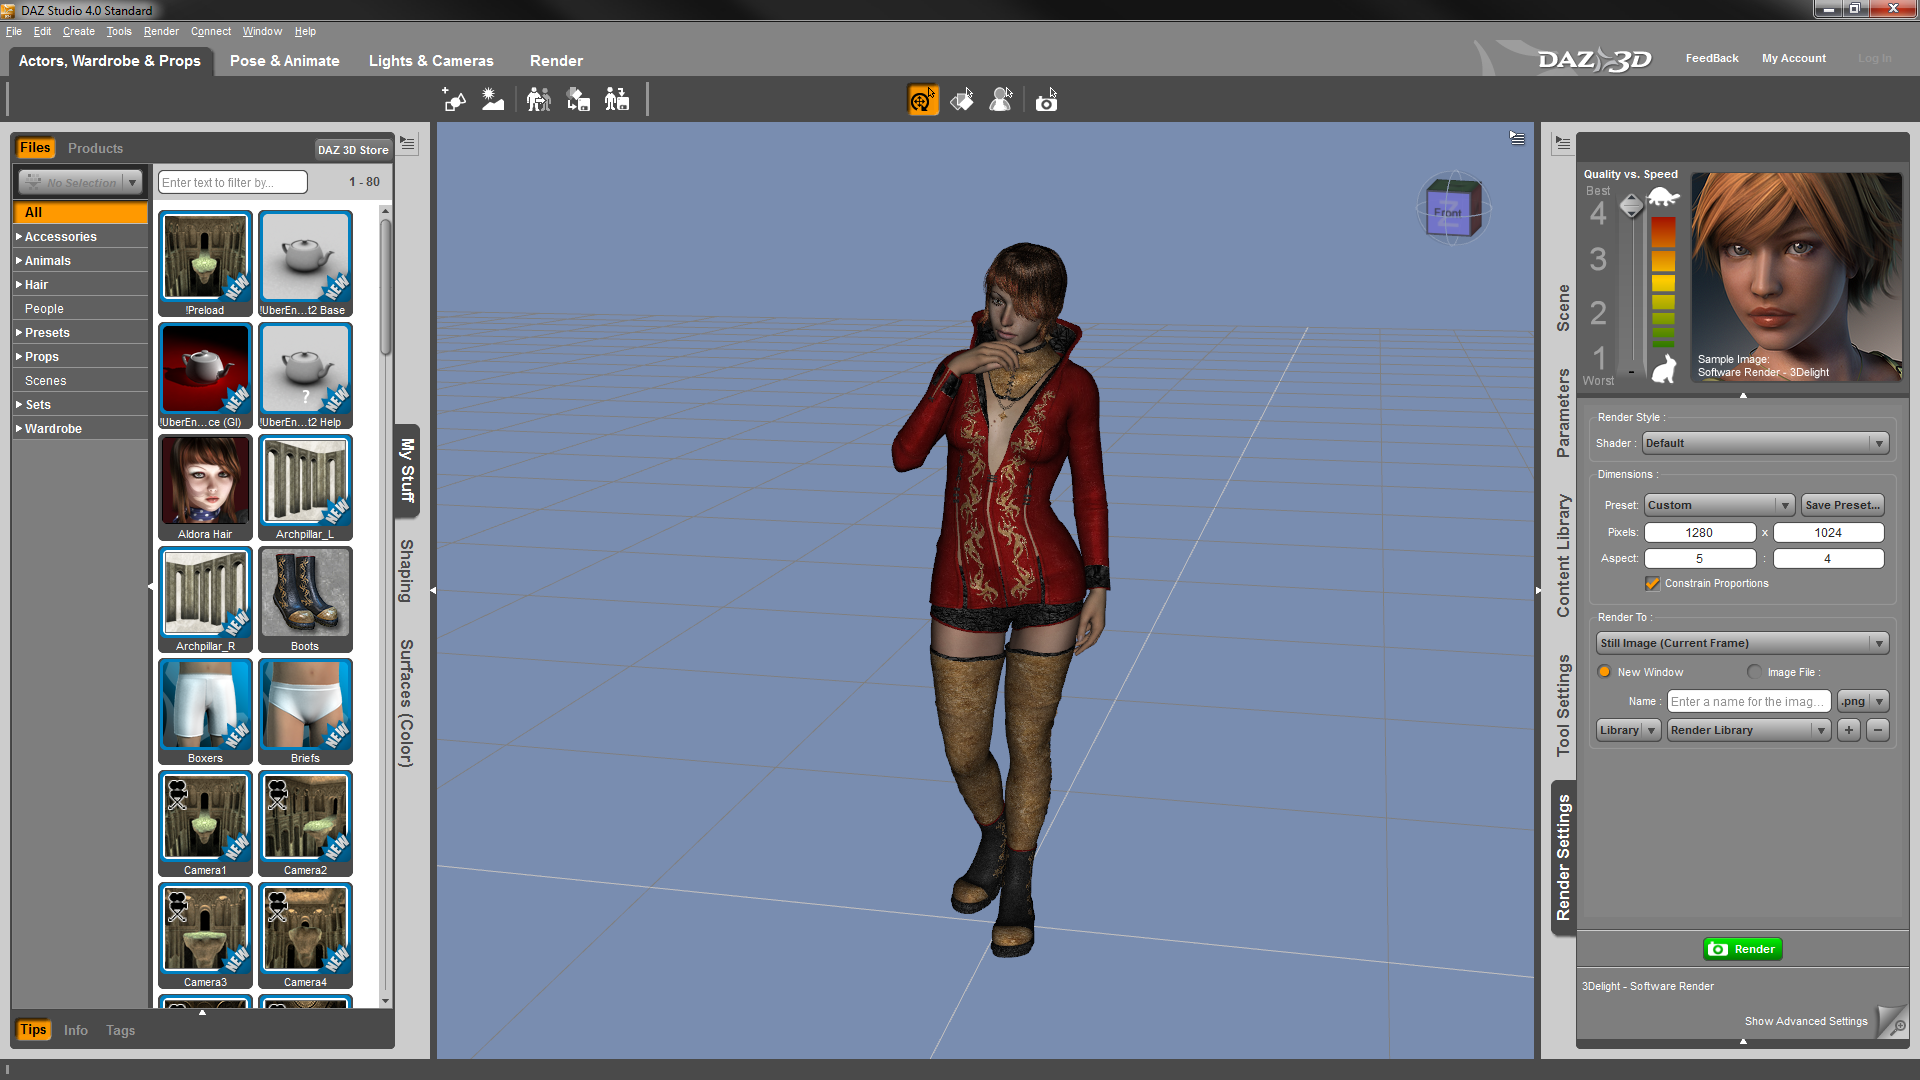 Daz 3d Releases Daz Studio 4 For Hobbyists And Professionals